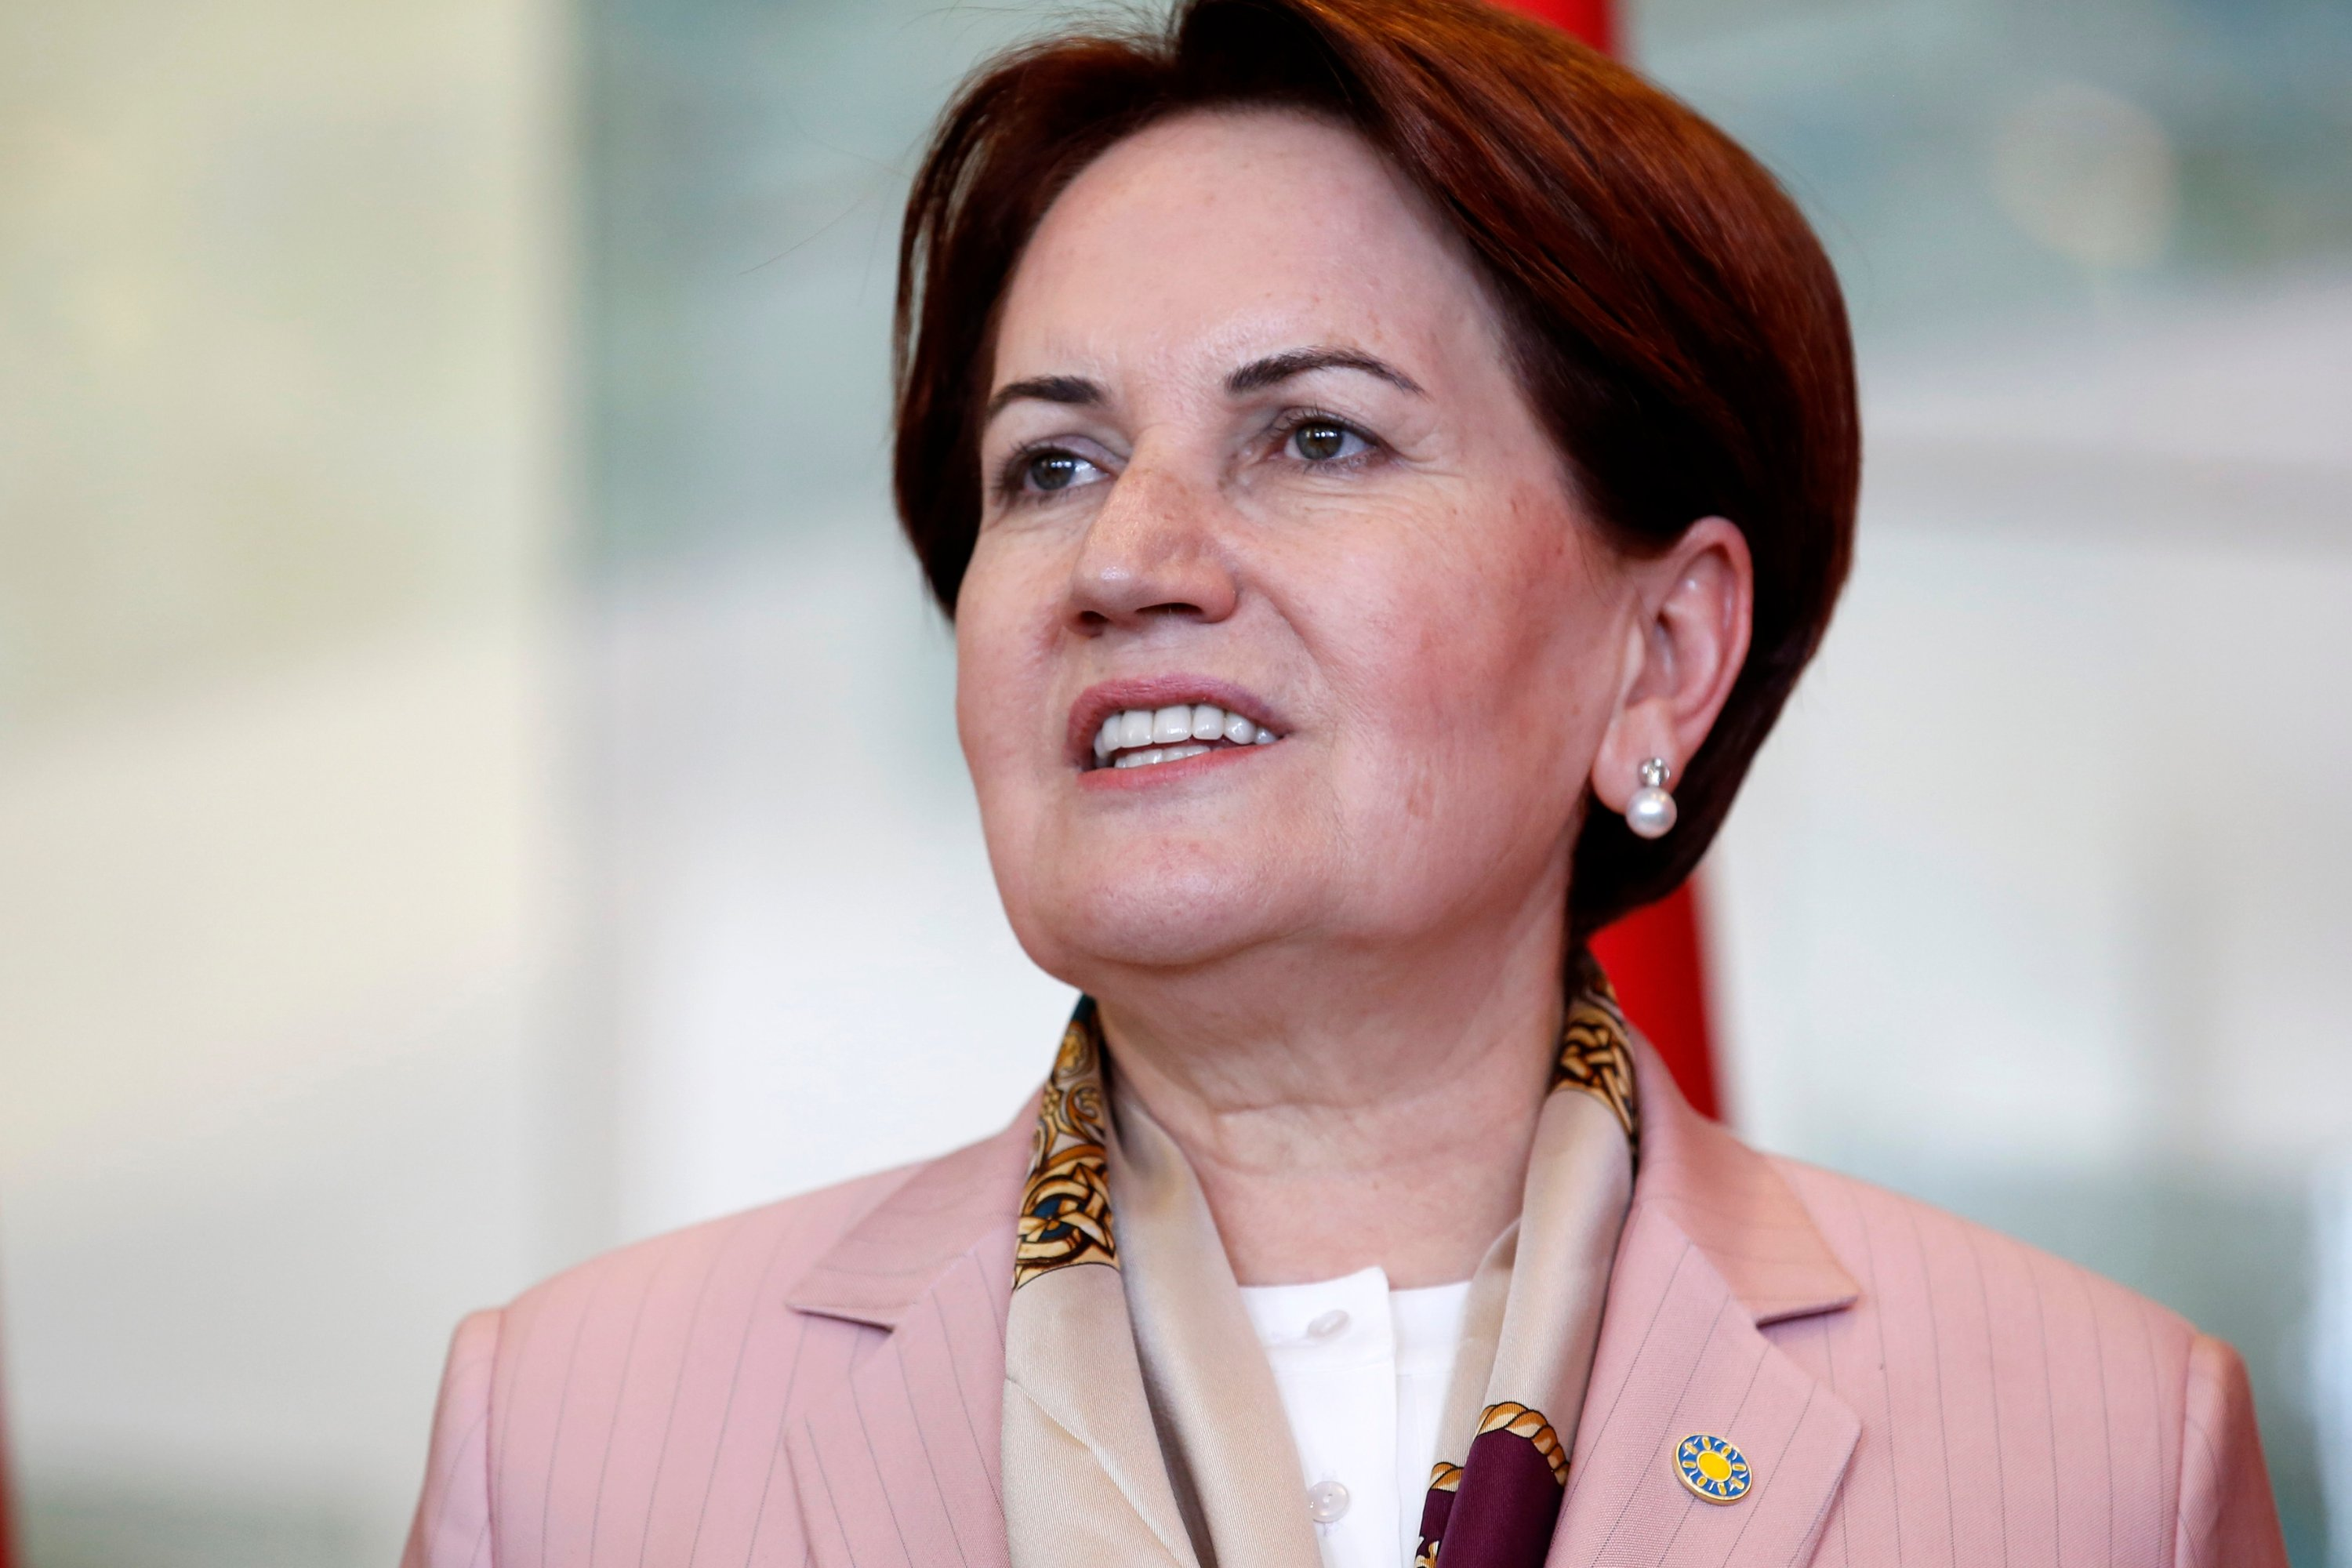 Republican People's Party (CHP) head Kemal Kılıçdaroğlu (not pictured) and Good Party (IP) head Meral Akşener discussed possible alliance formulas before the presidential election in Ankara, Turkey, April 25, 2018. (Shutterstock Photo)